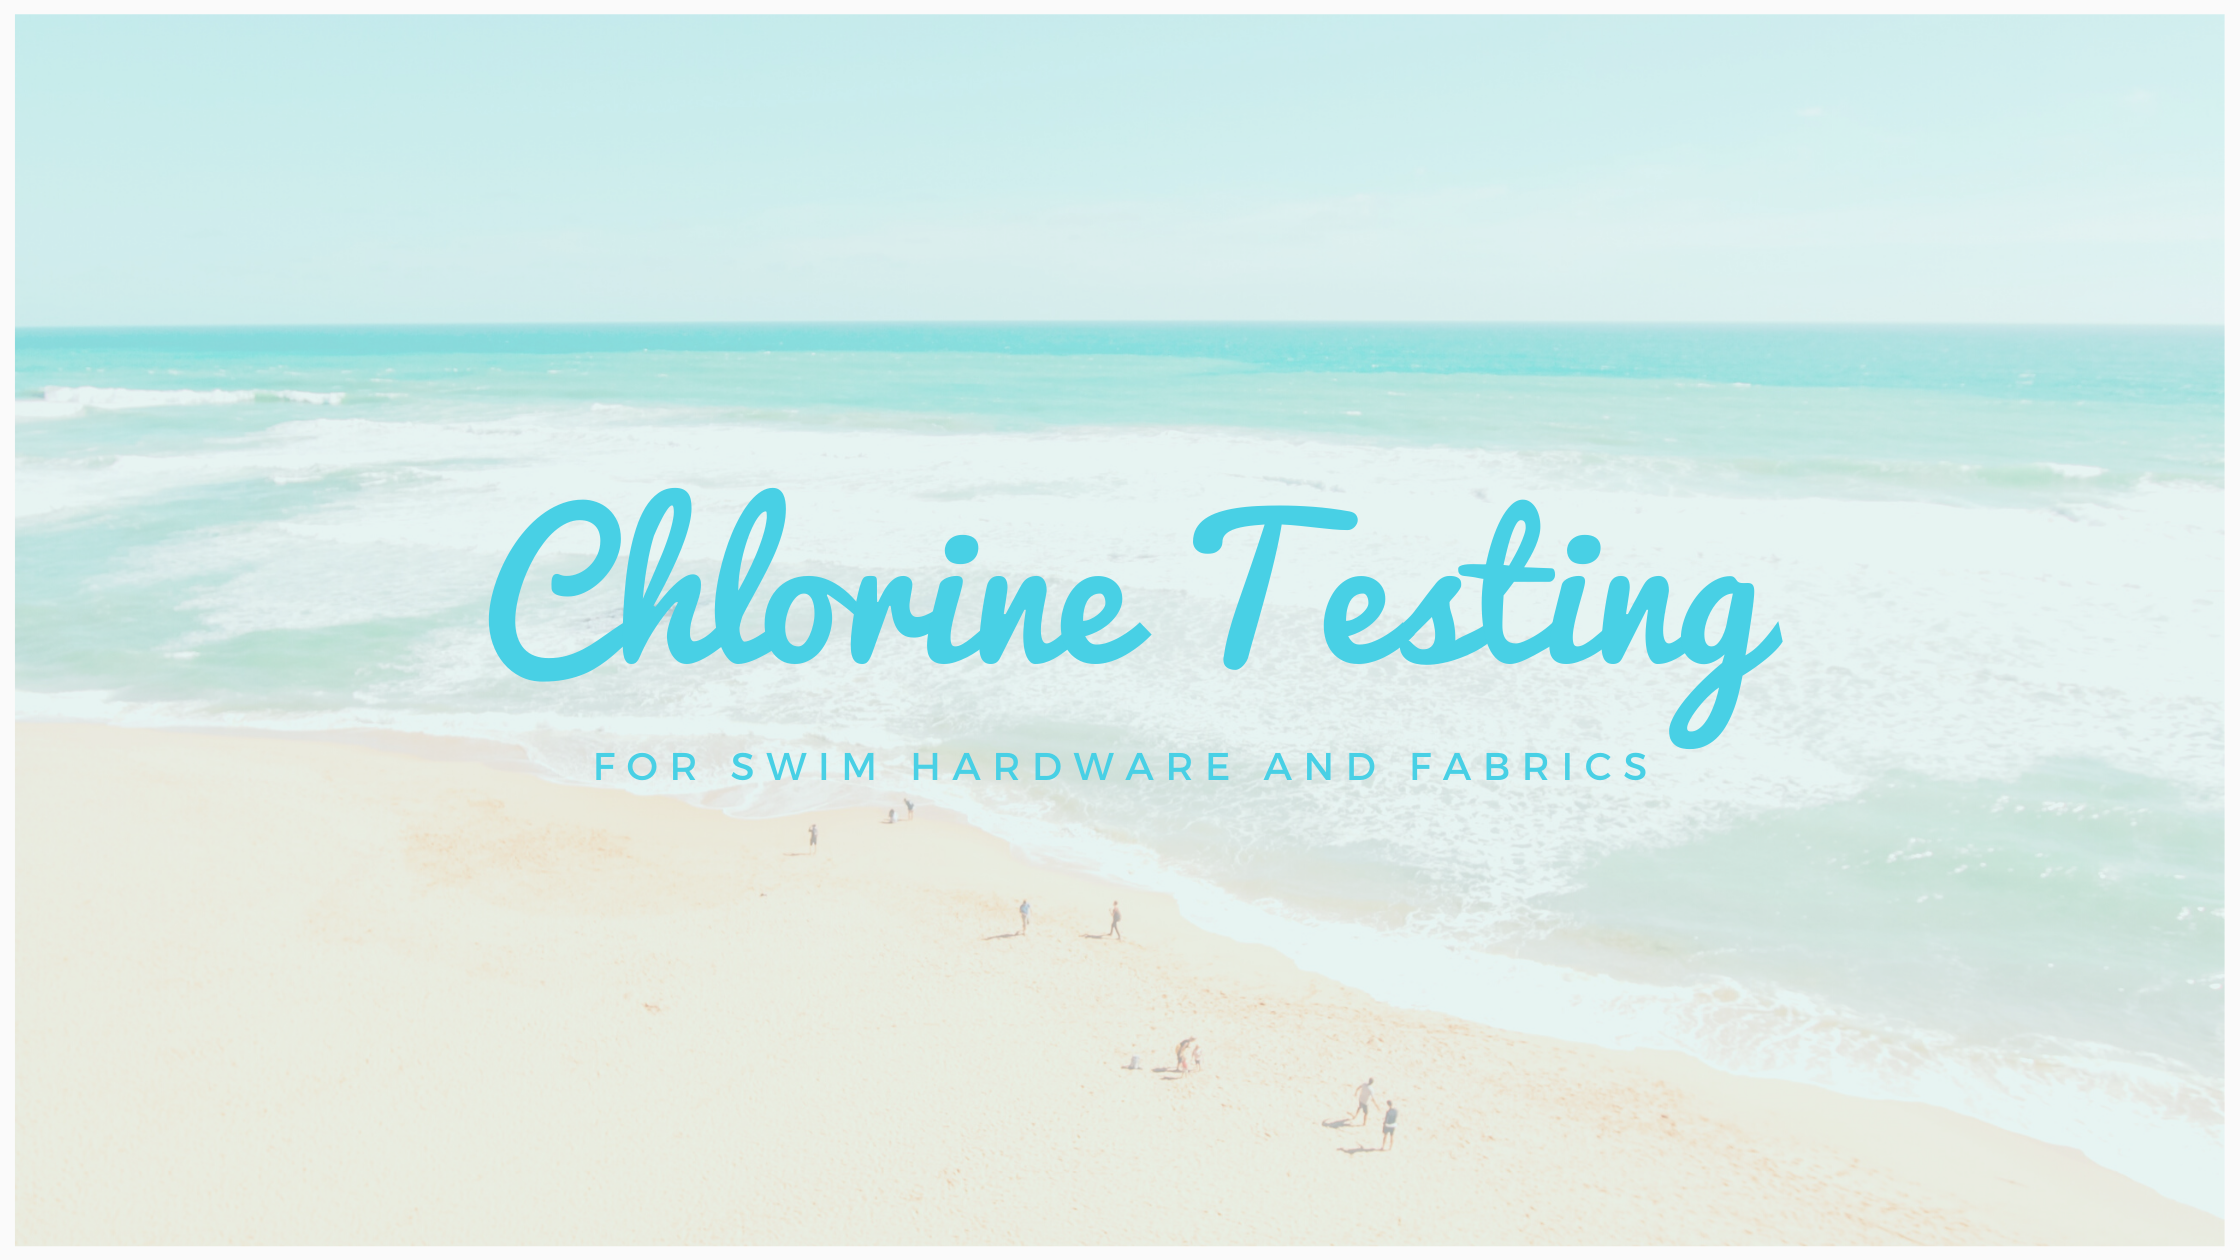 Chlorine Test for Swimwear